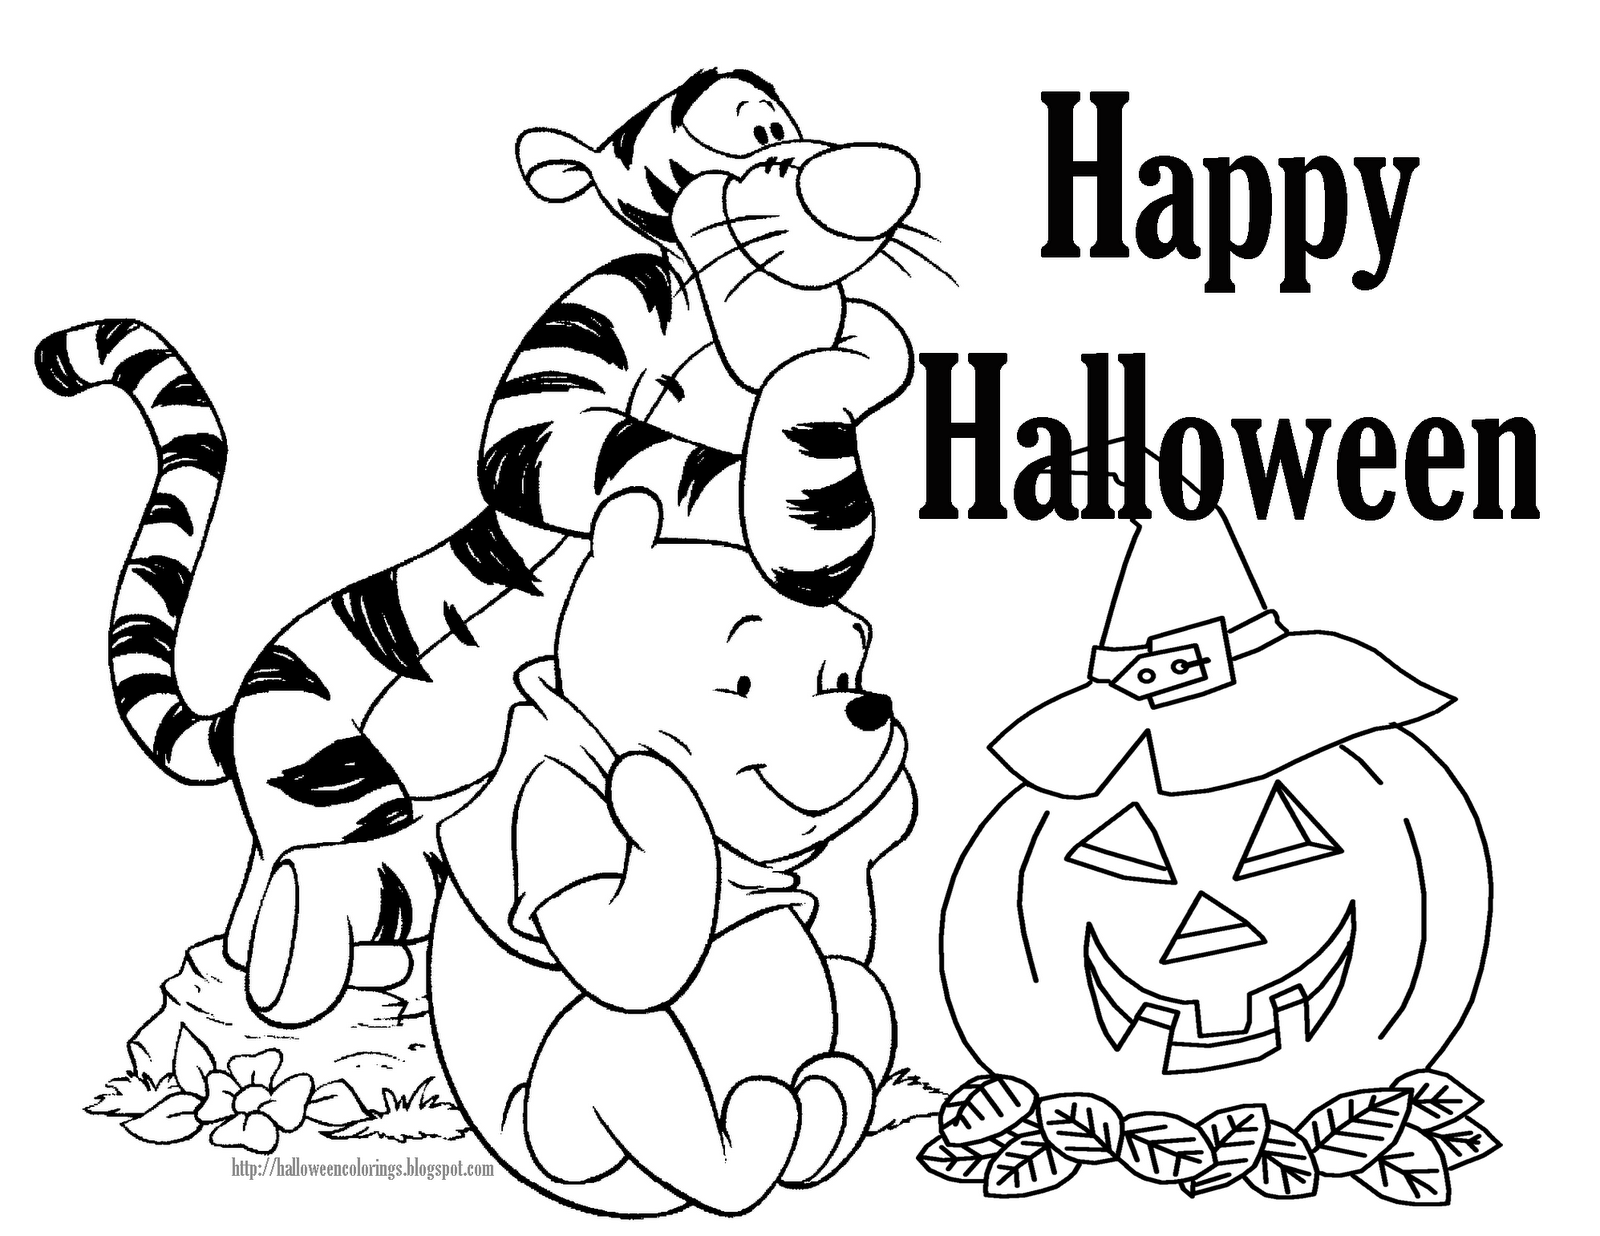 halween coloring pages - photo#36